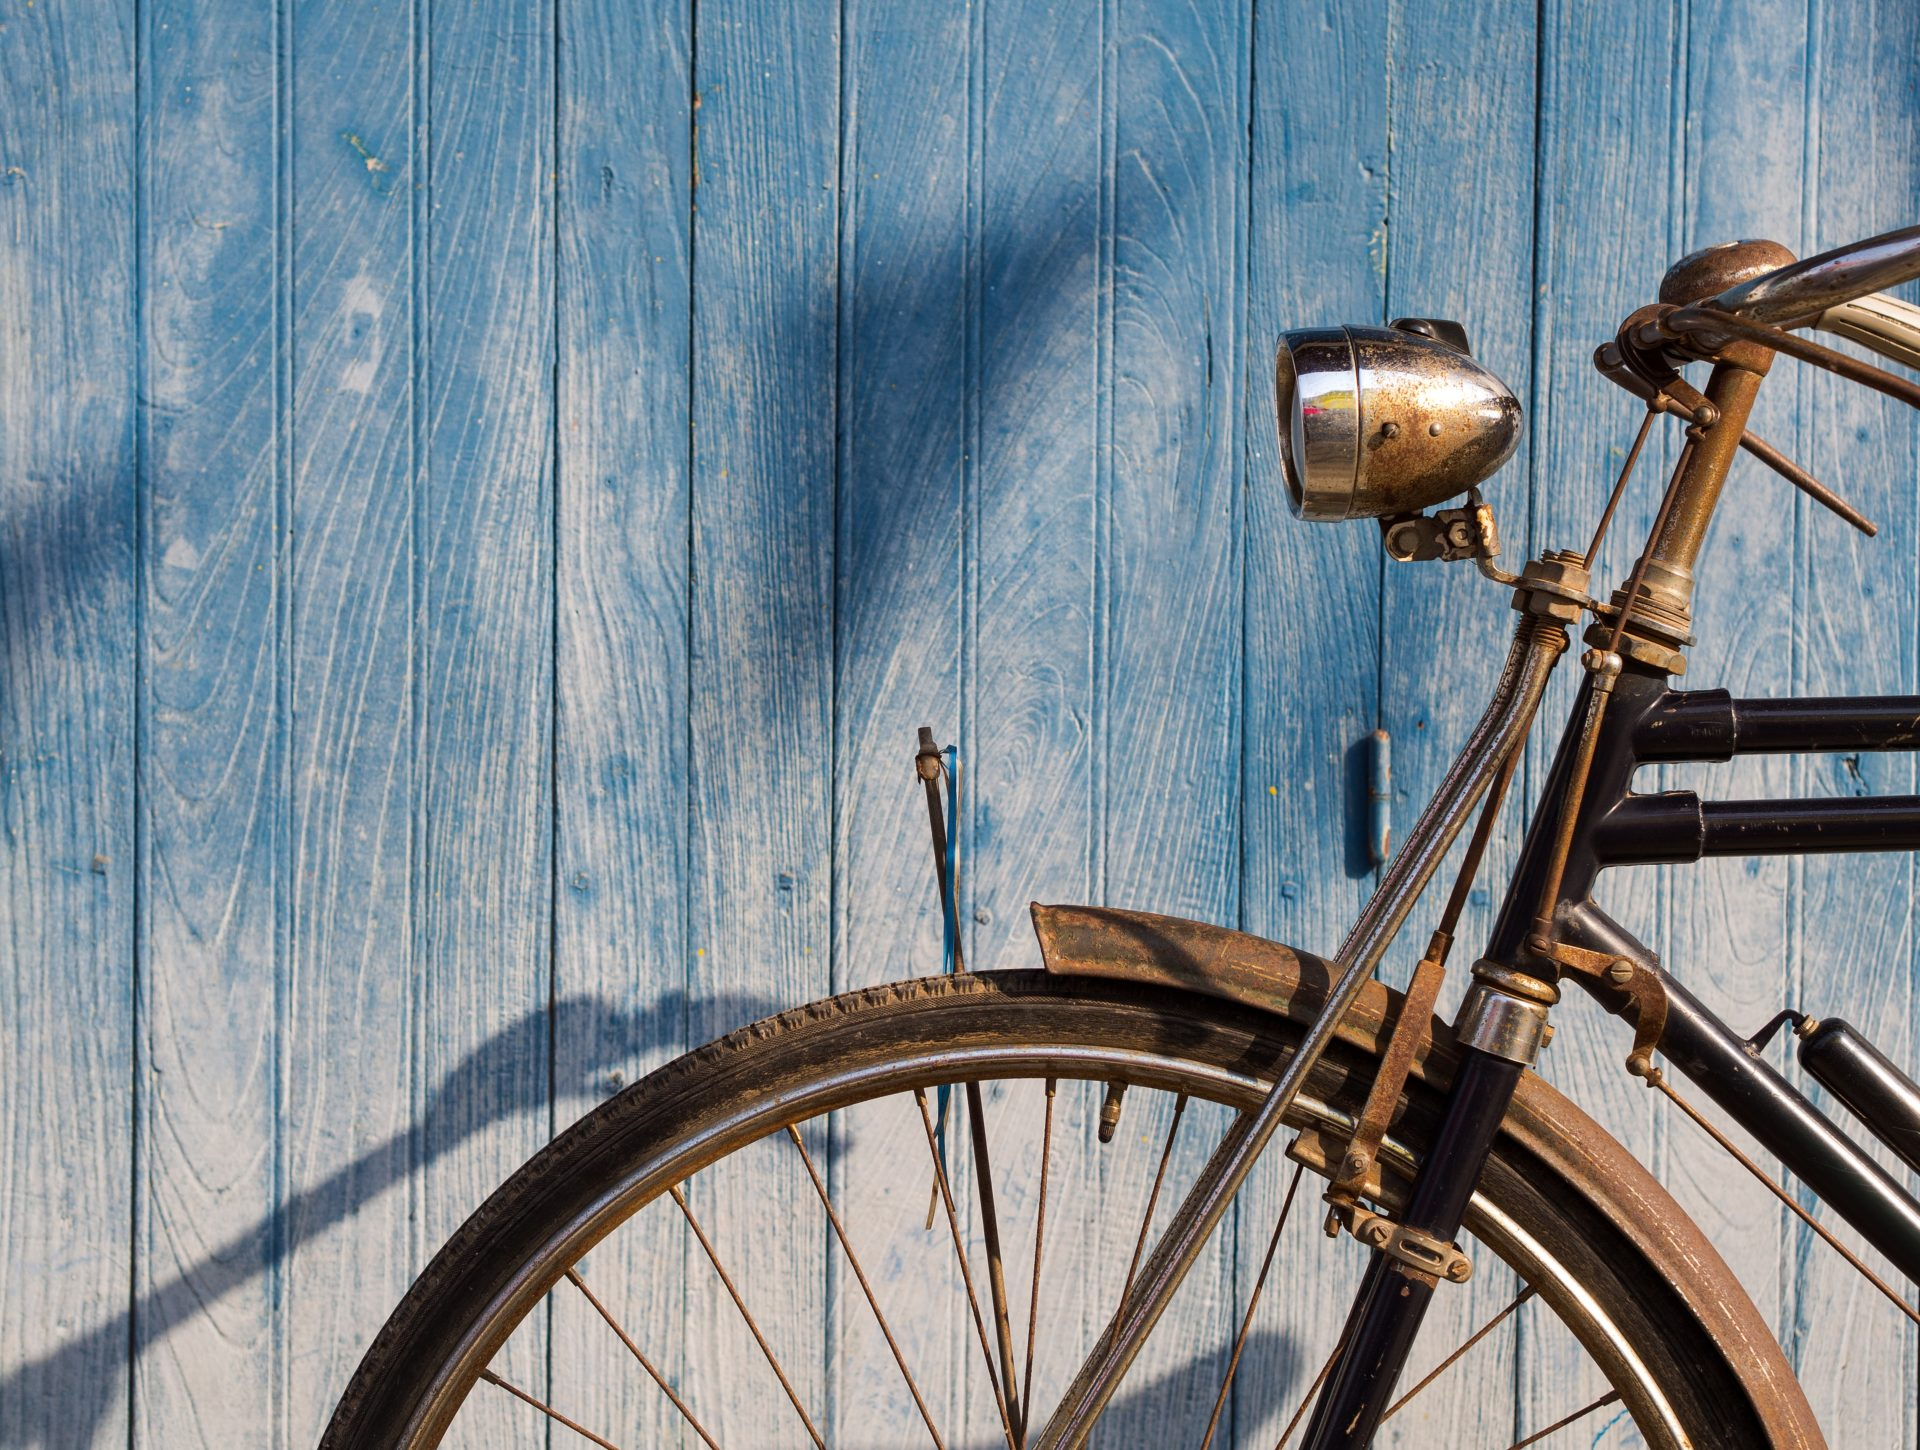 Old bicycle parked in front of blue plank floor for text and background.